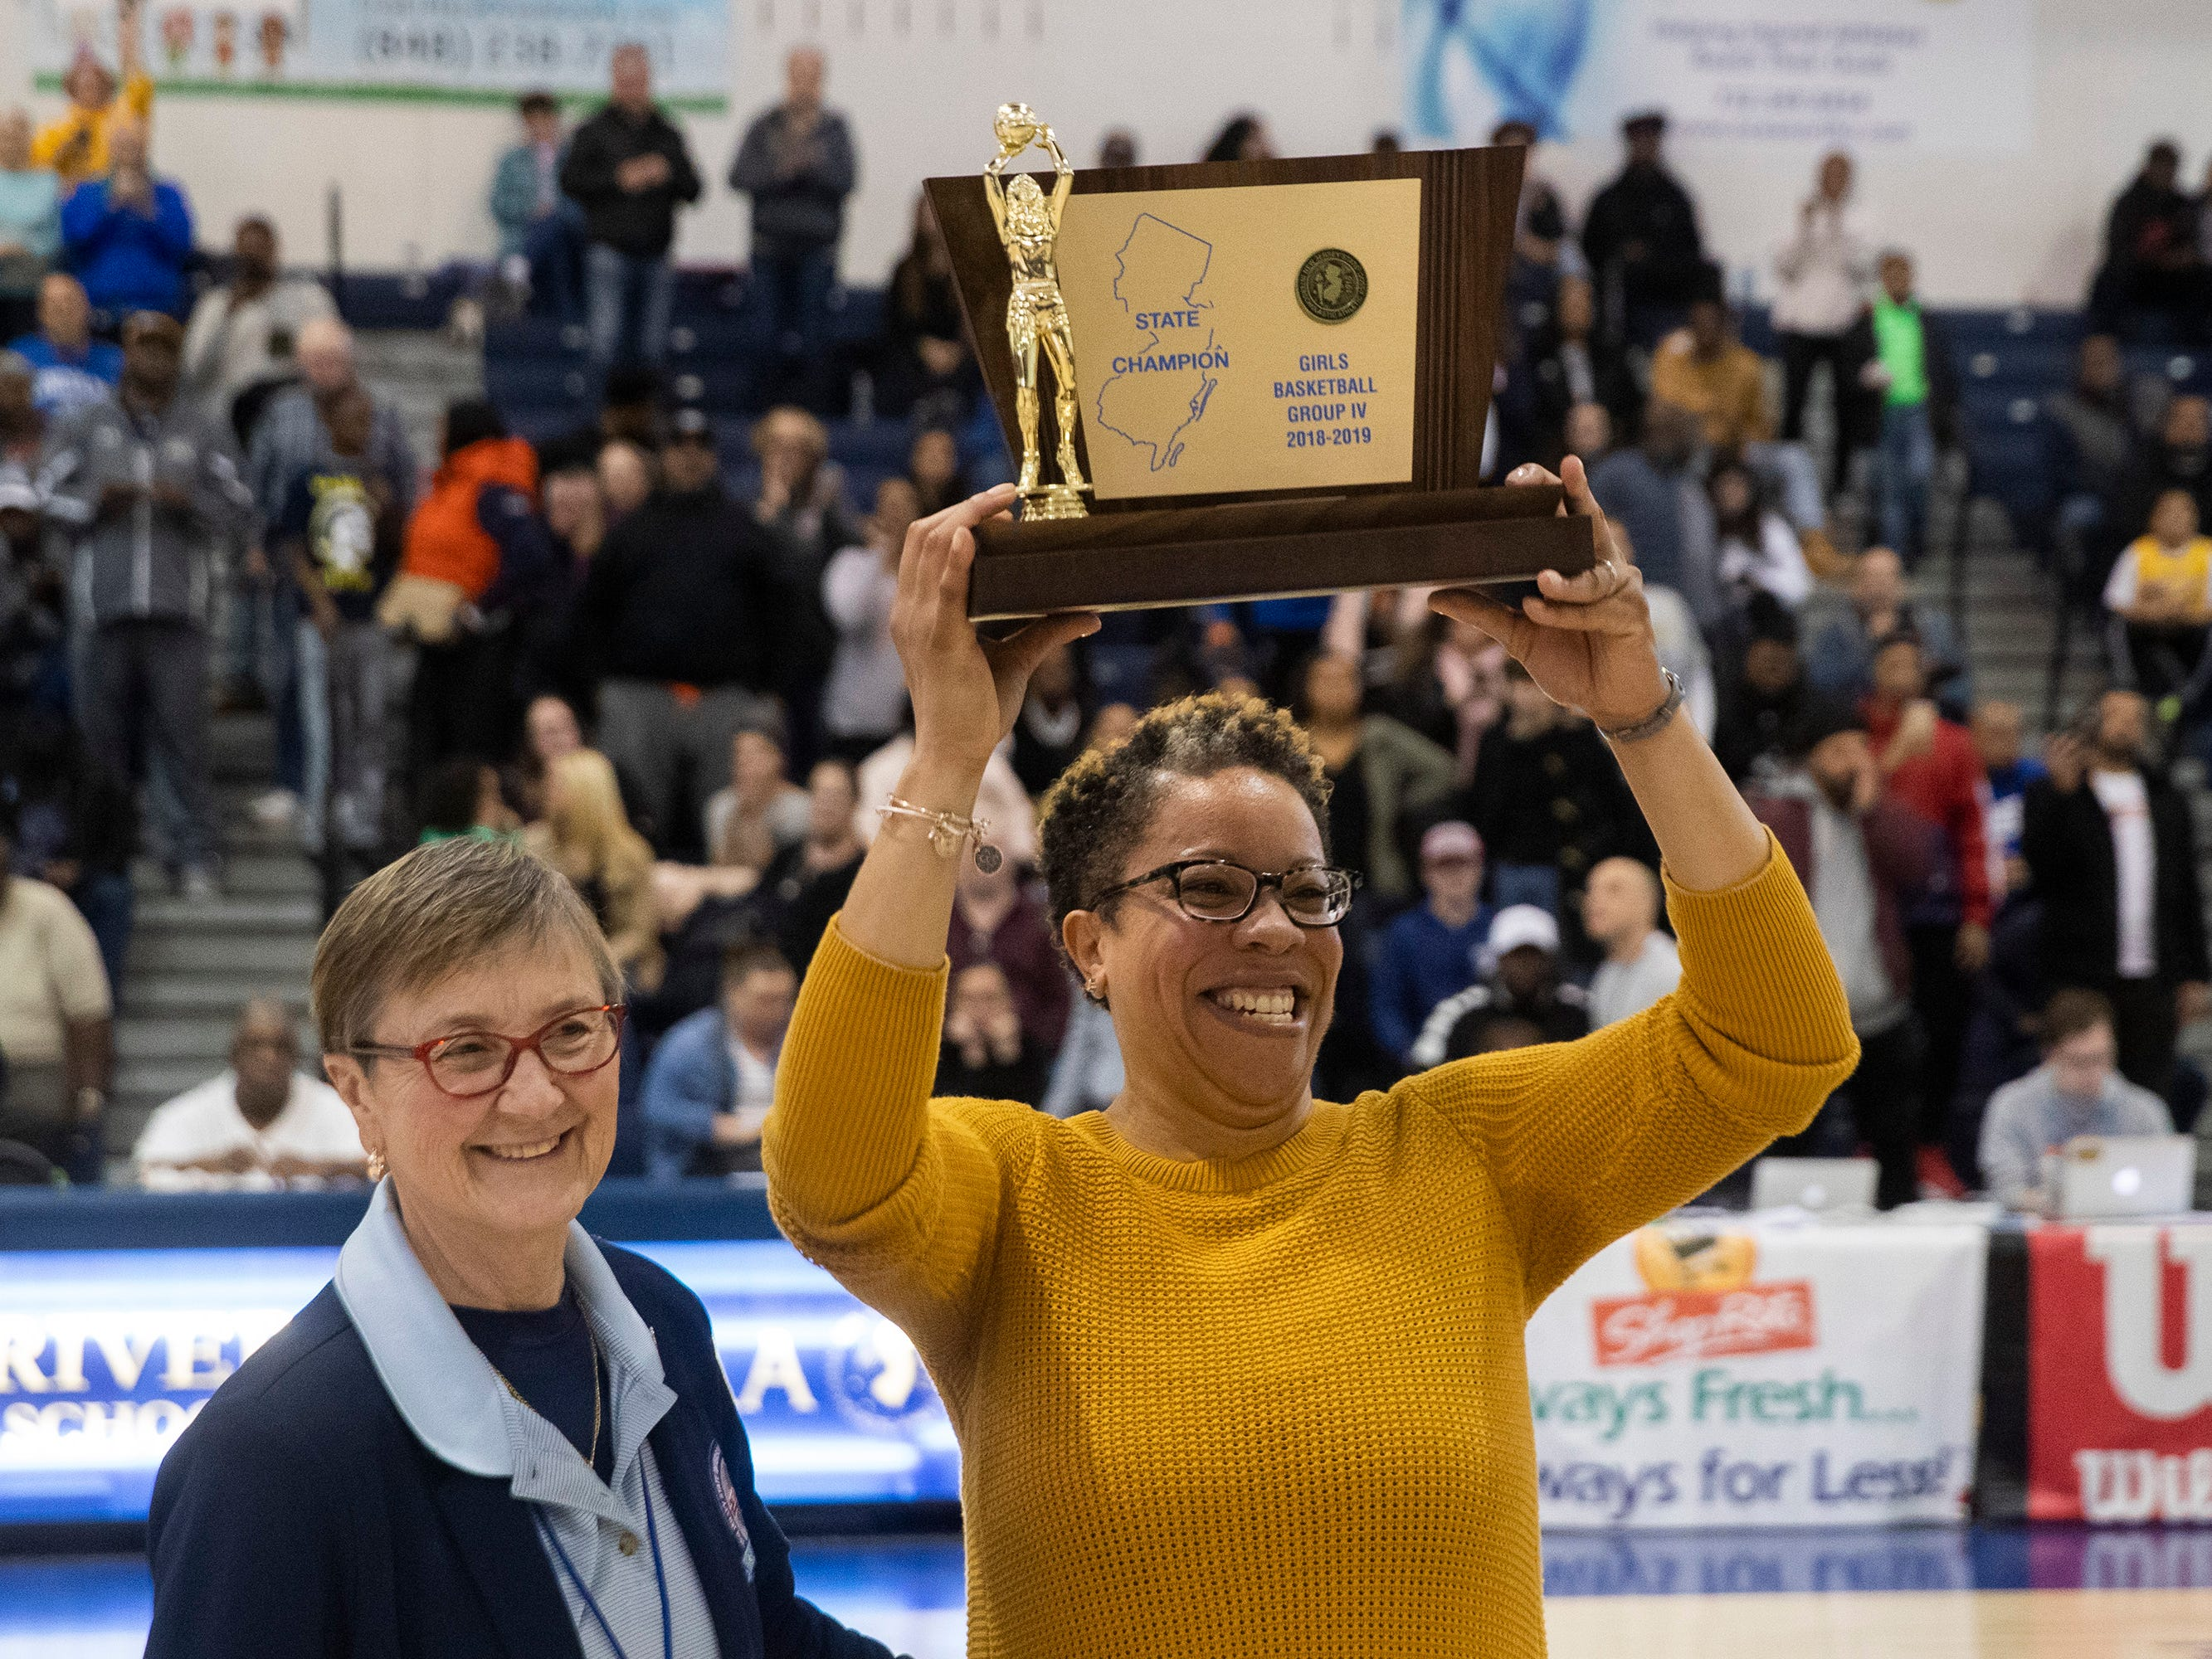 Franklin Coah Audrey Taylor holds up her team's Group IV trophy. Franklin Girls Basketball vs Lenape in Girls Group IV Final in Toms River on March 10, 2019.